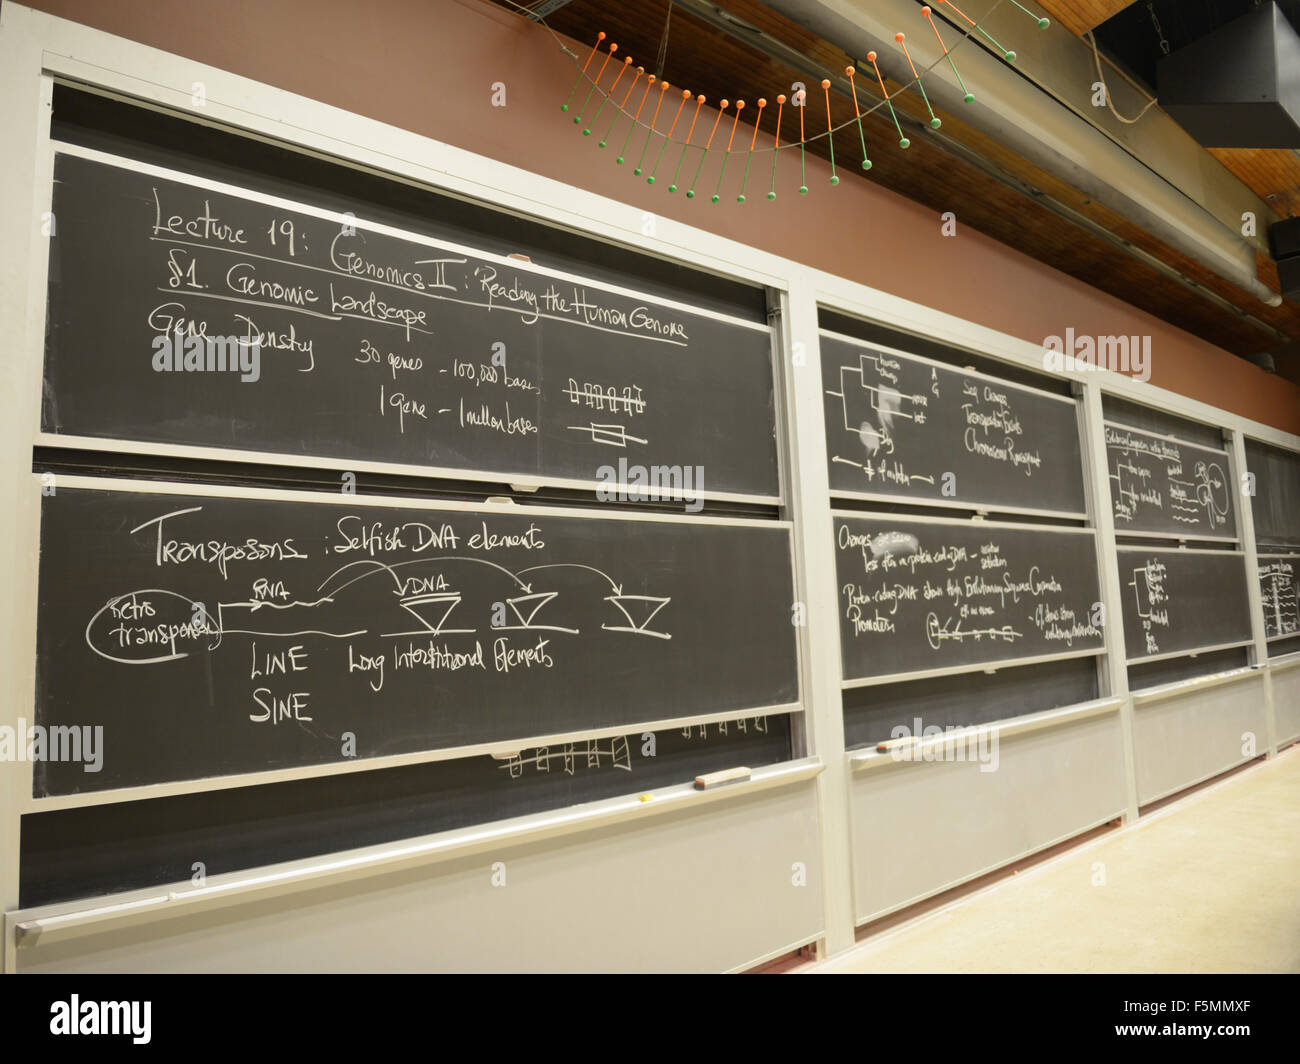 University lecture hall blackboard with notes written by Biology professor - Stock Image